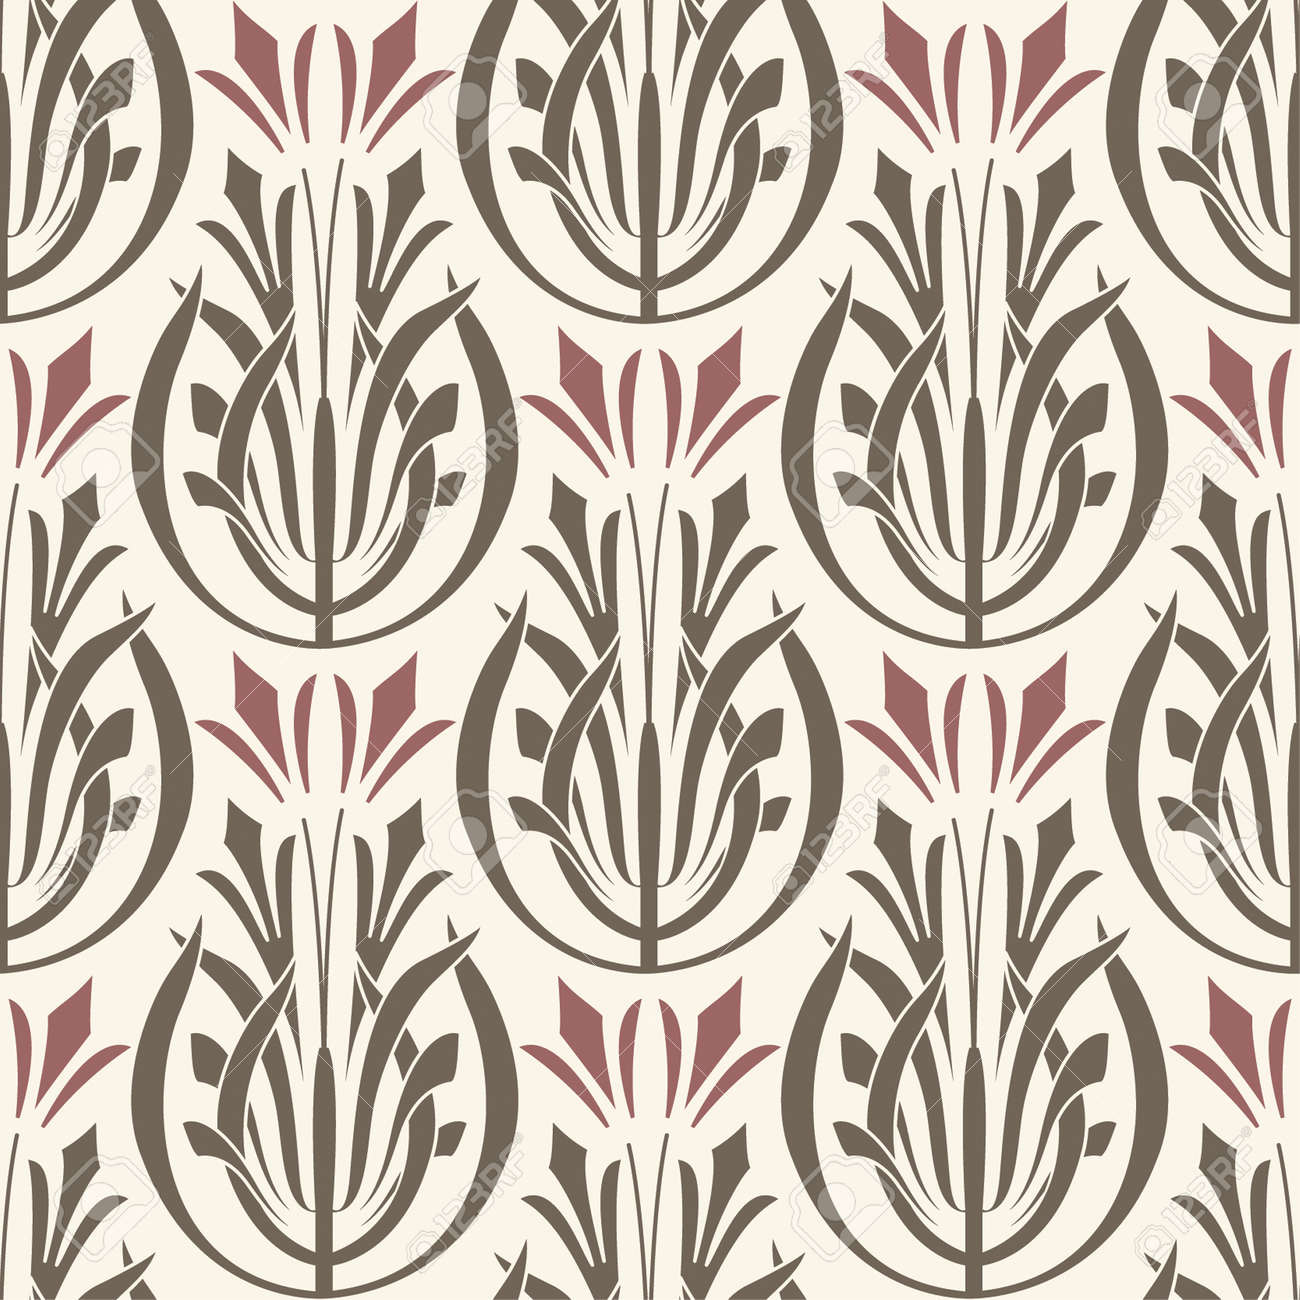 wallpaper pattern in modern style royalty free cliparts vectors  - wallpaper pattern in modern style stock vector